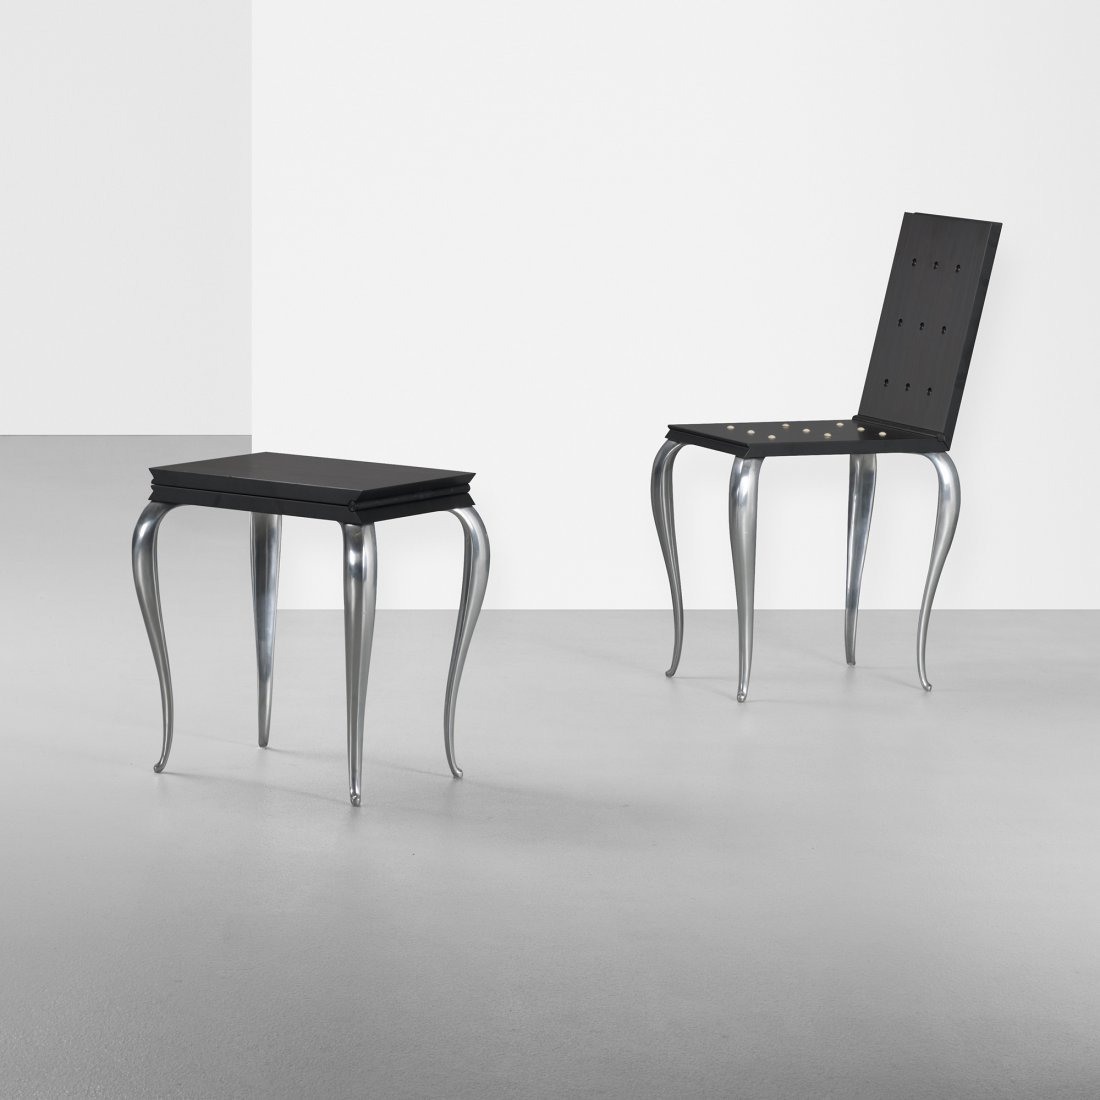 289: Philippe Starck Lola Mundo chairs, pair